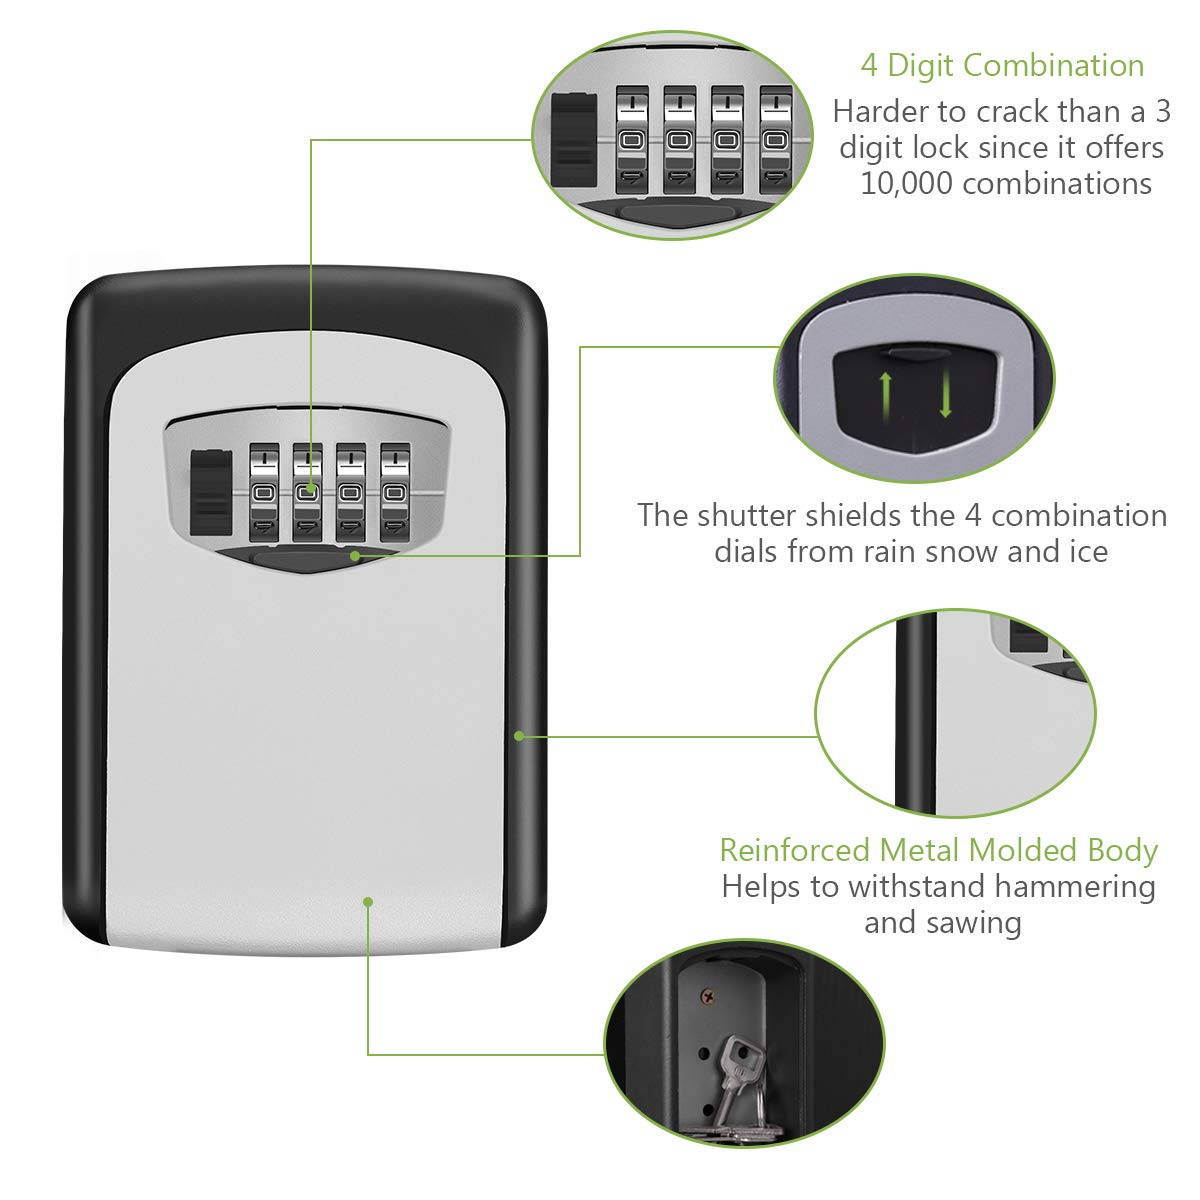 Details about  /Wall Mounted 4-Digit Combination Key Lock Box Security Storage Case Organizer B